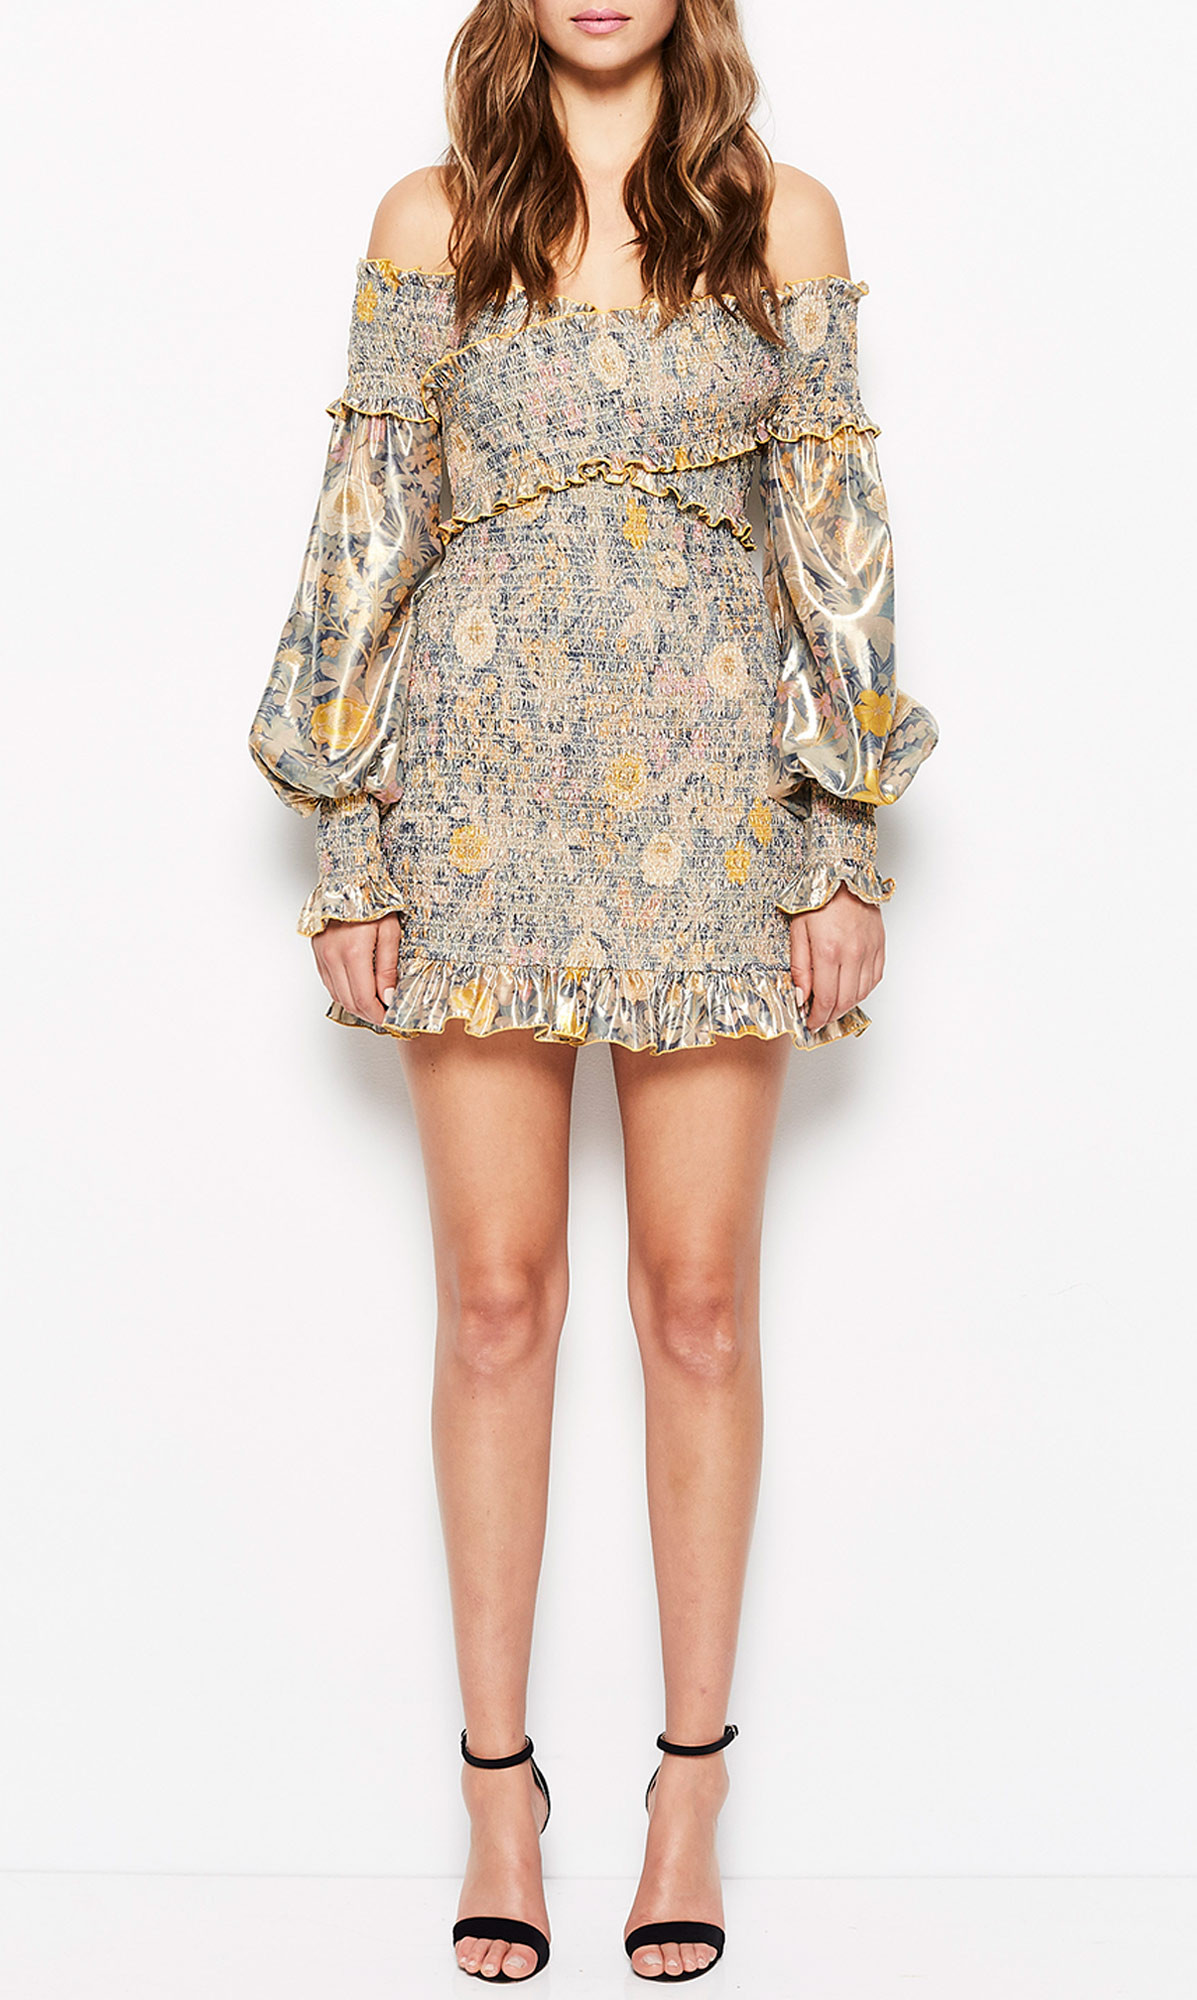 Alice Mccall Higher Love Dress Get Dressed Hire